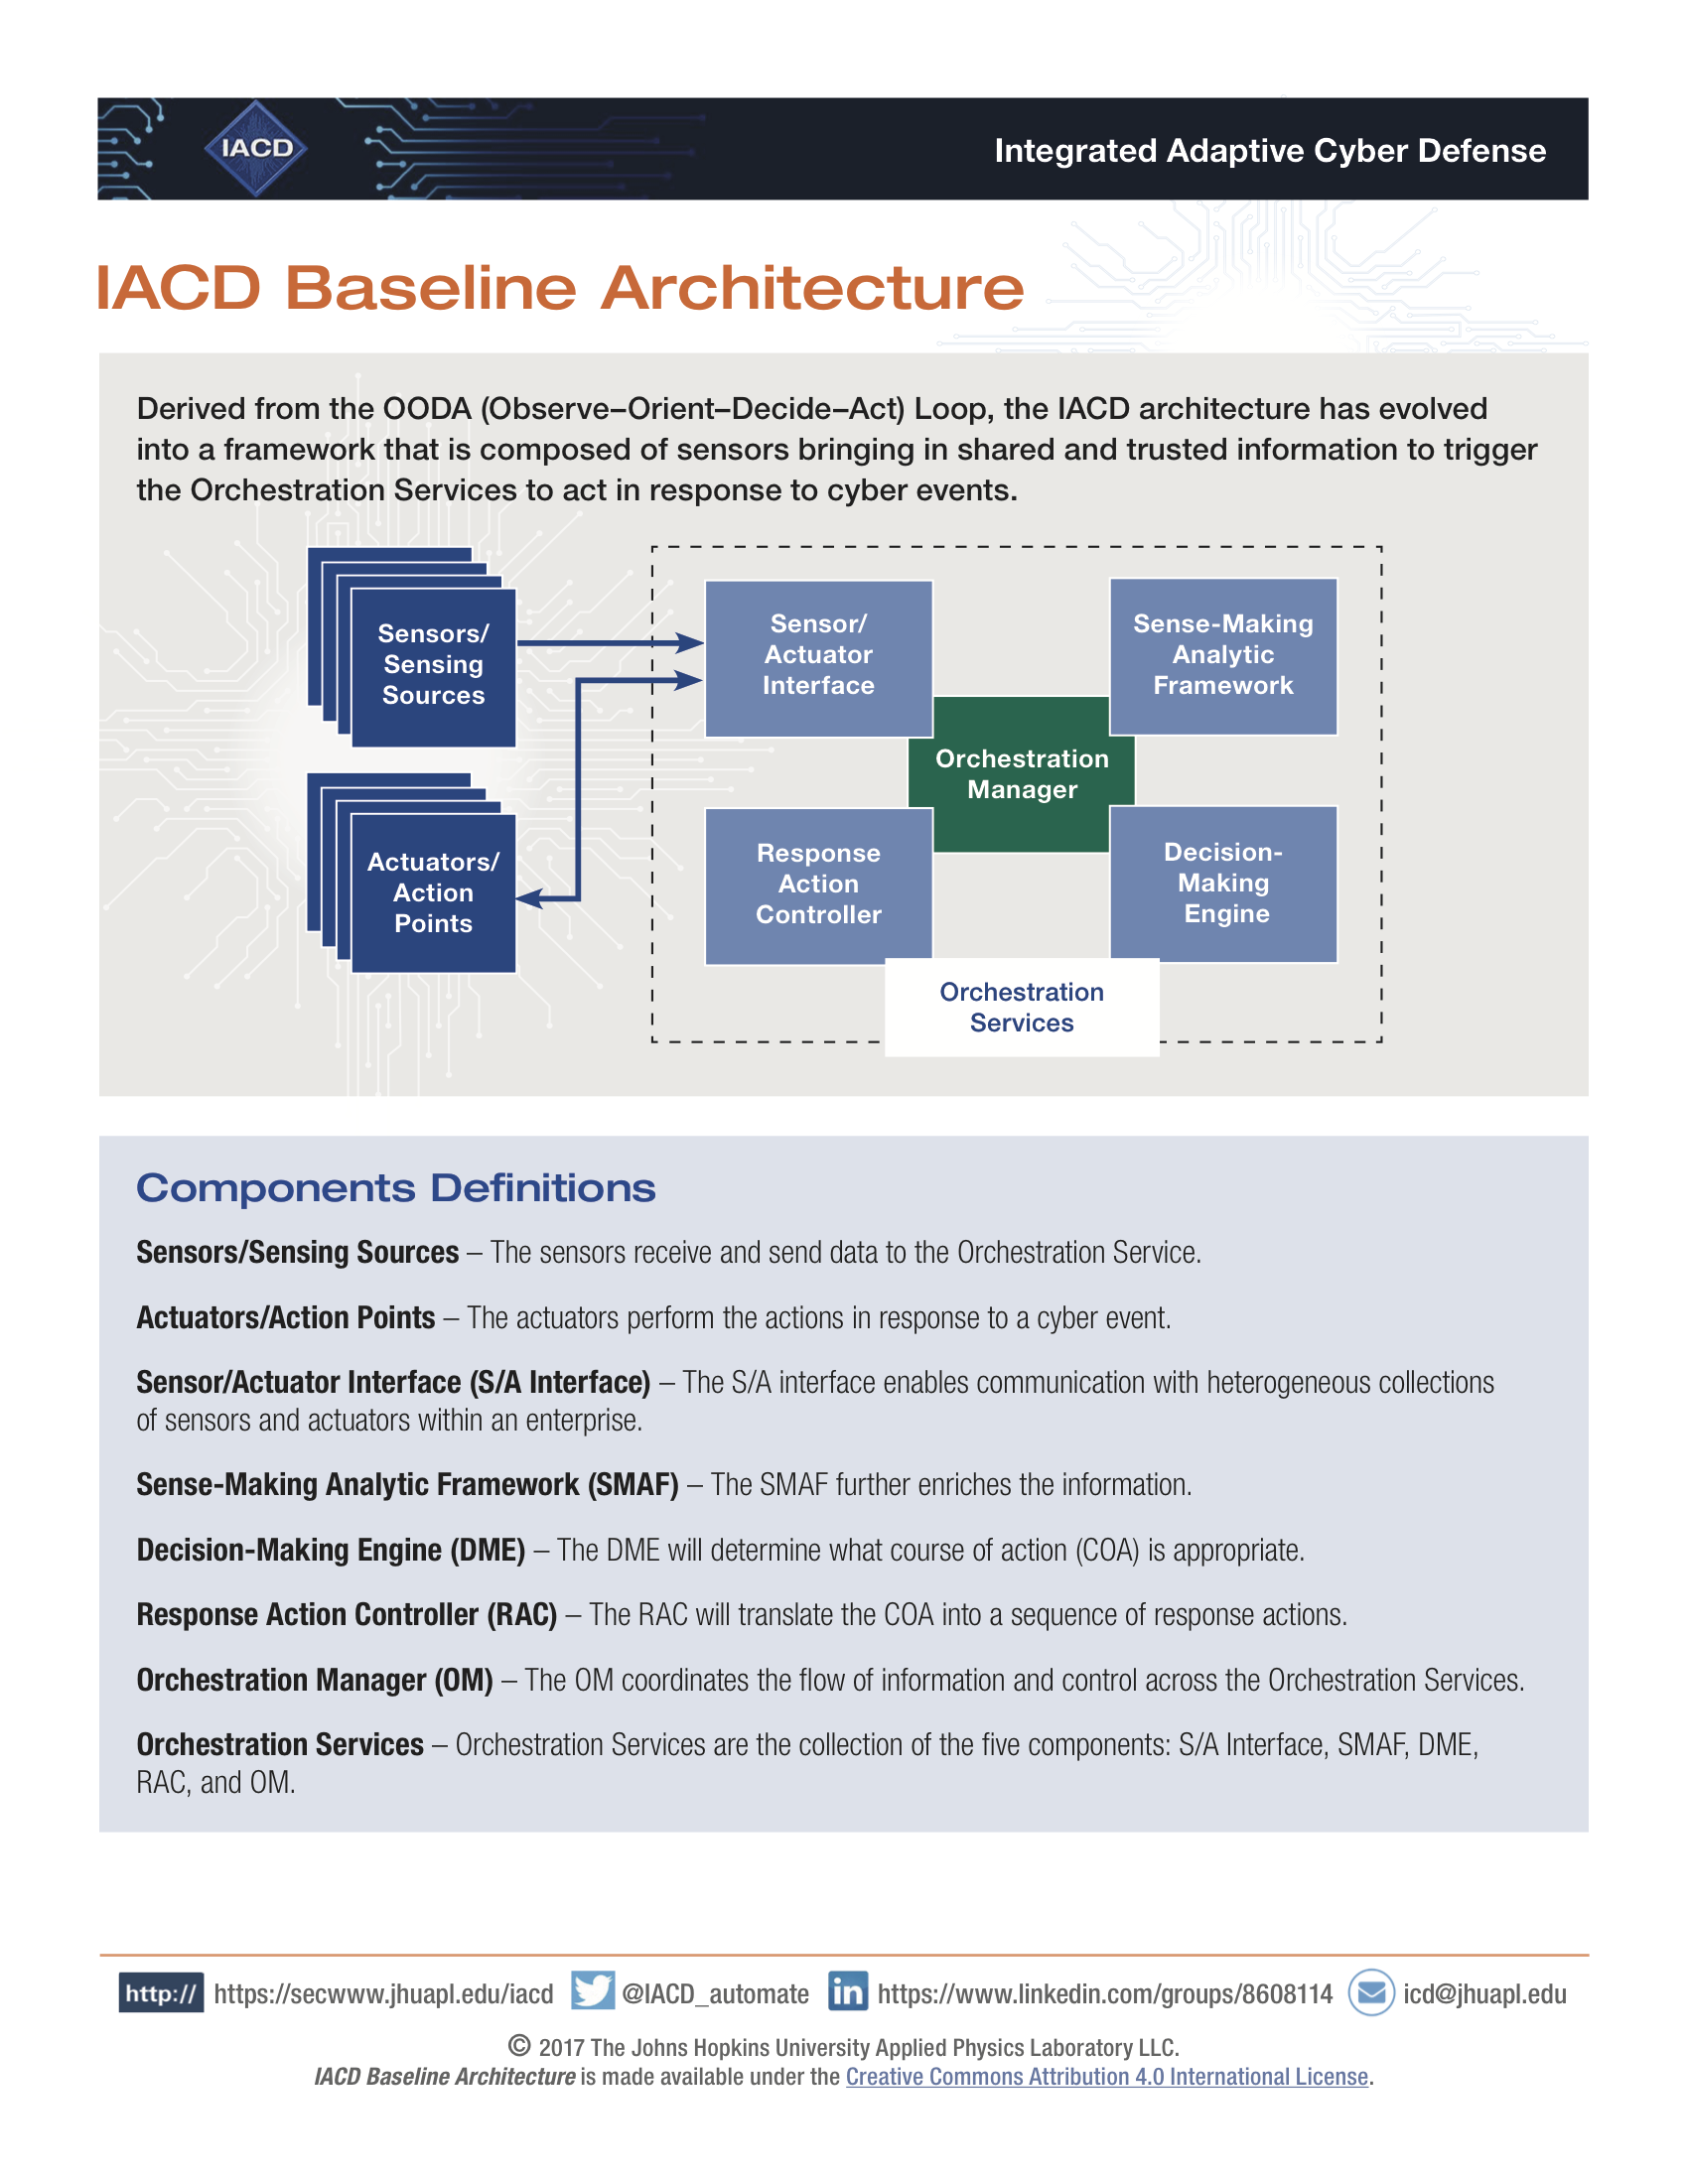 IACD Baseline Architecture